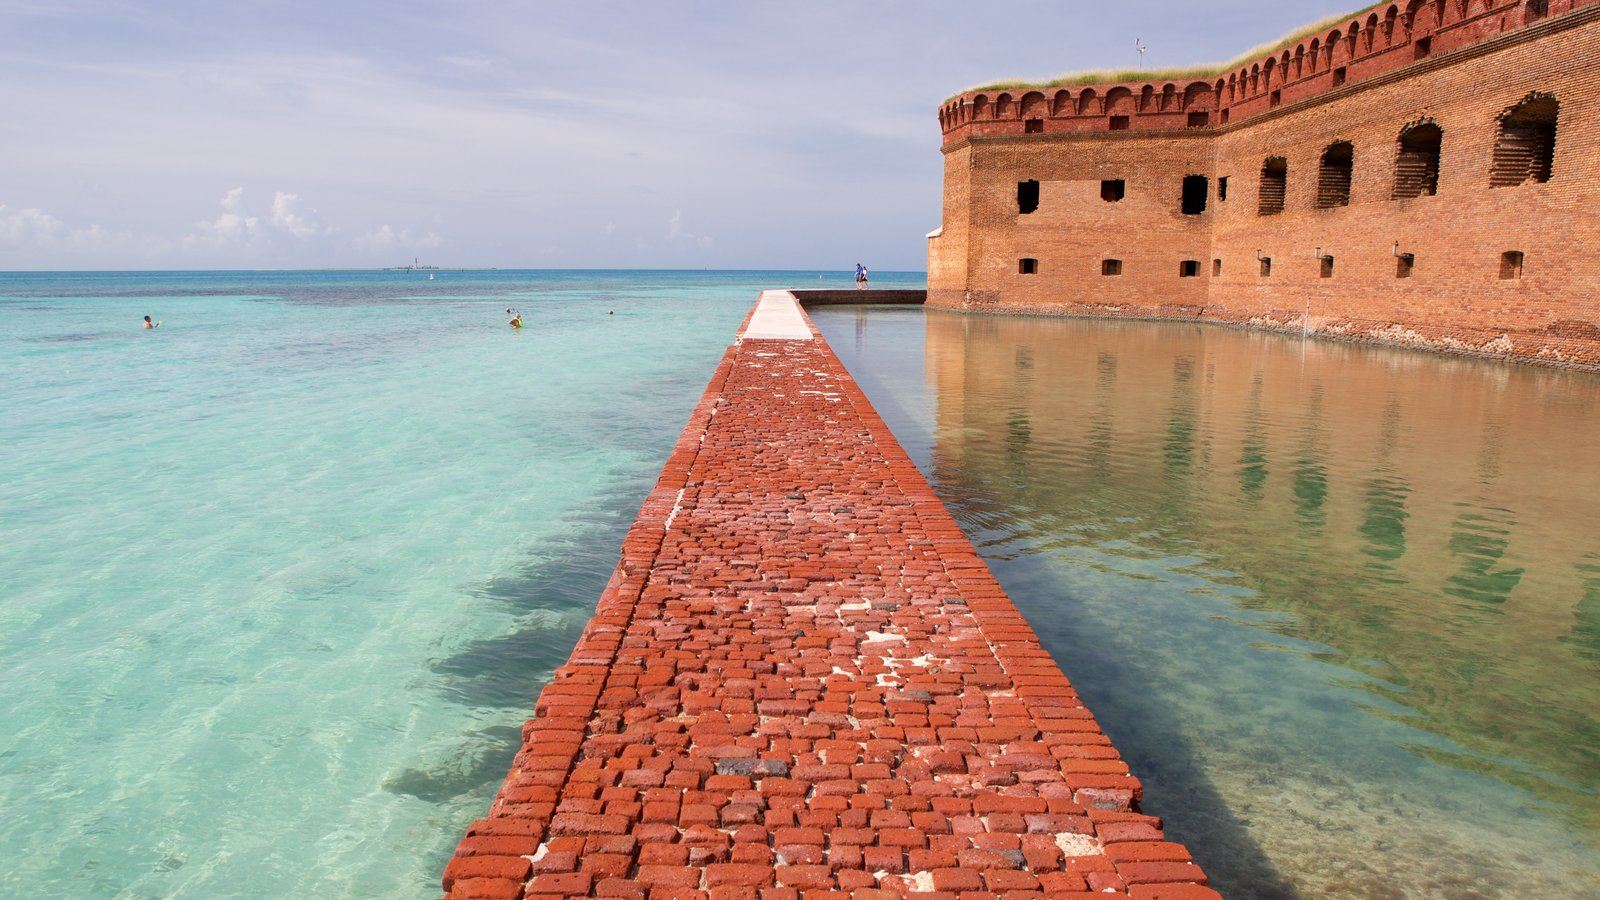 Dry Tortugas National Park featuring heritage architecture and general coastal views